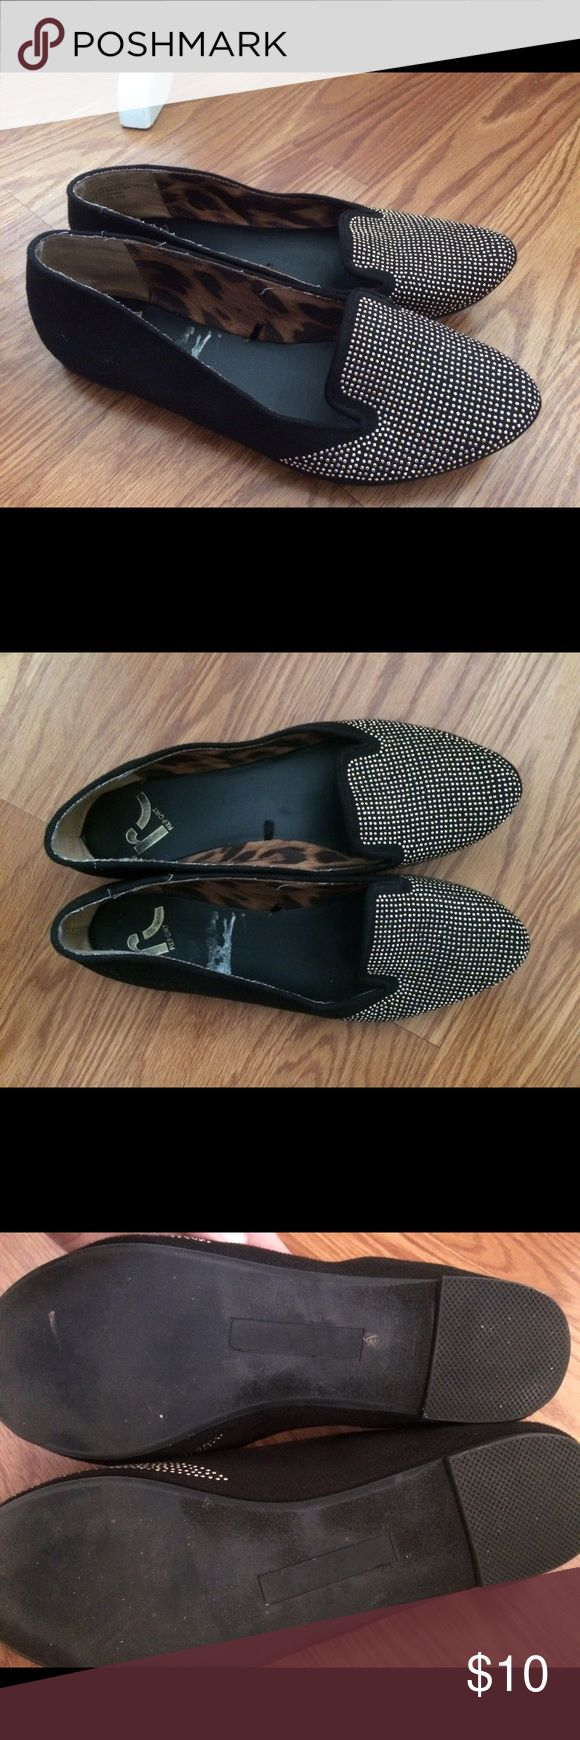 Black Gold Studded Loafers Worn twice, fits narrow feet Report Shoes Flats & Loafers